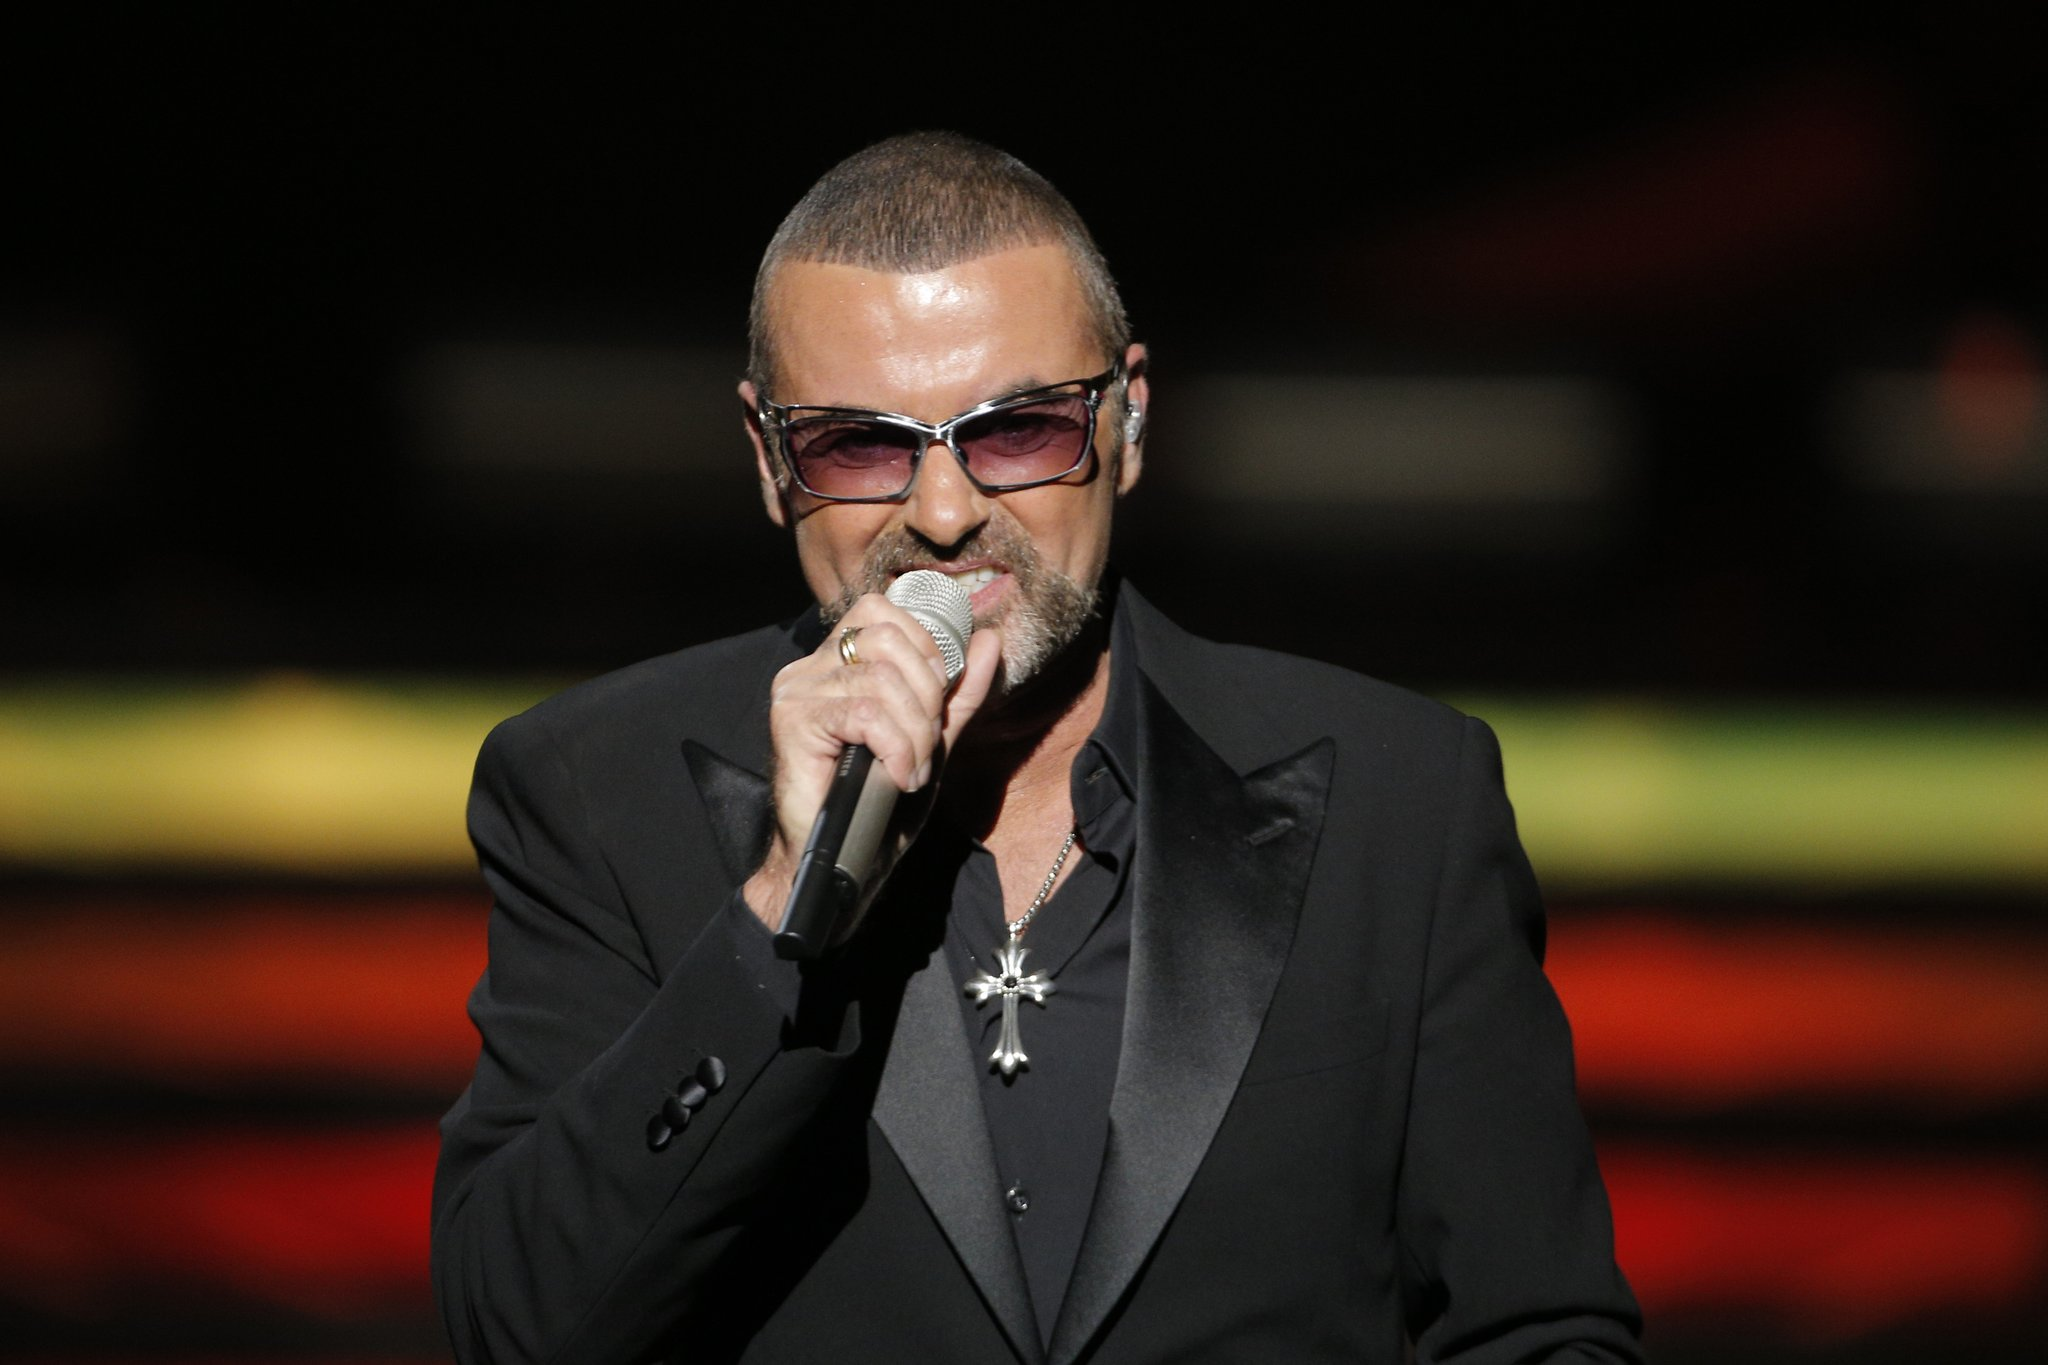 george michael wallpaper pictures hd 621